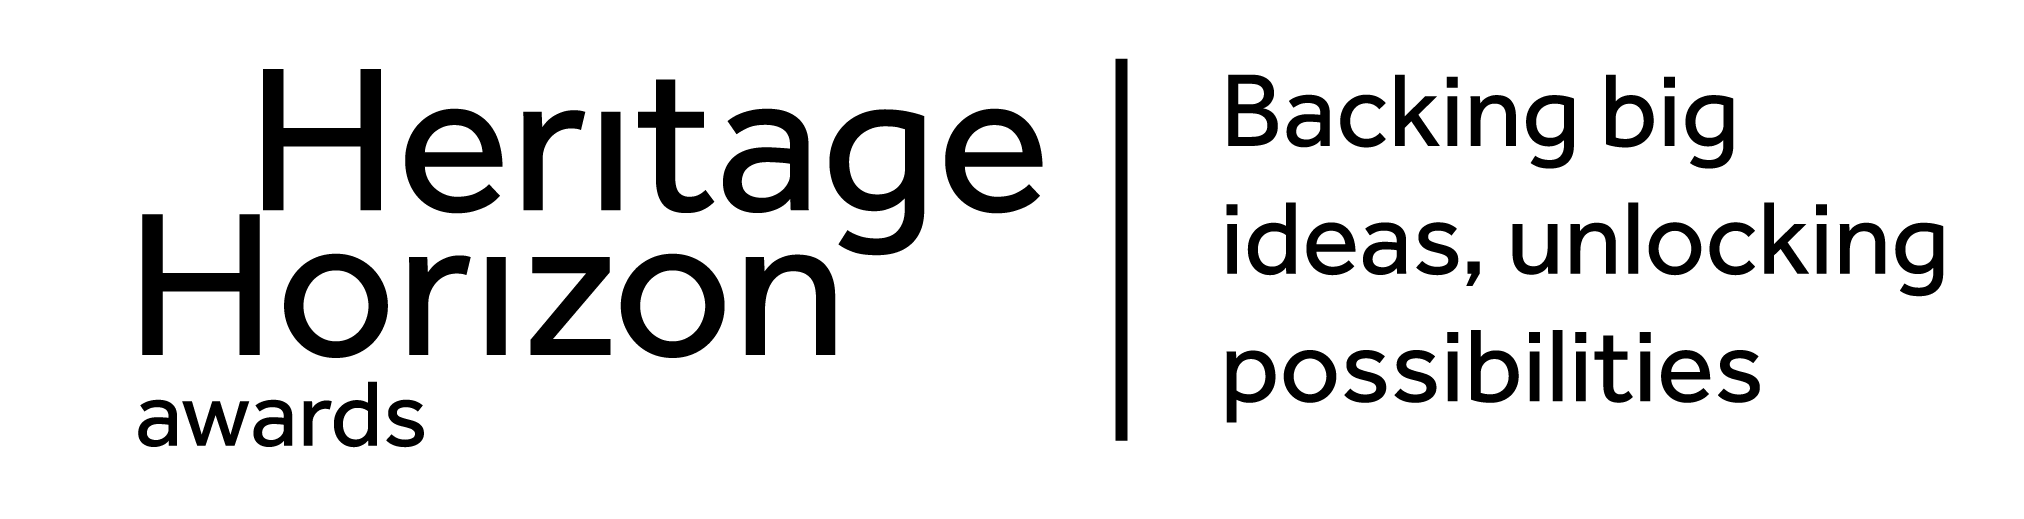 Heritage Horizon Awards - backing big idea, unlocking possibilities